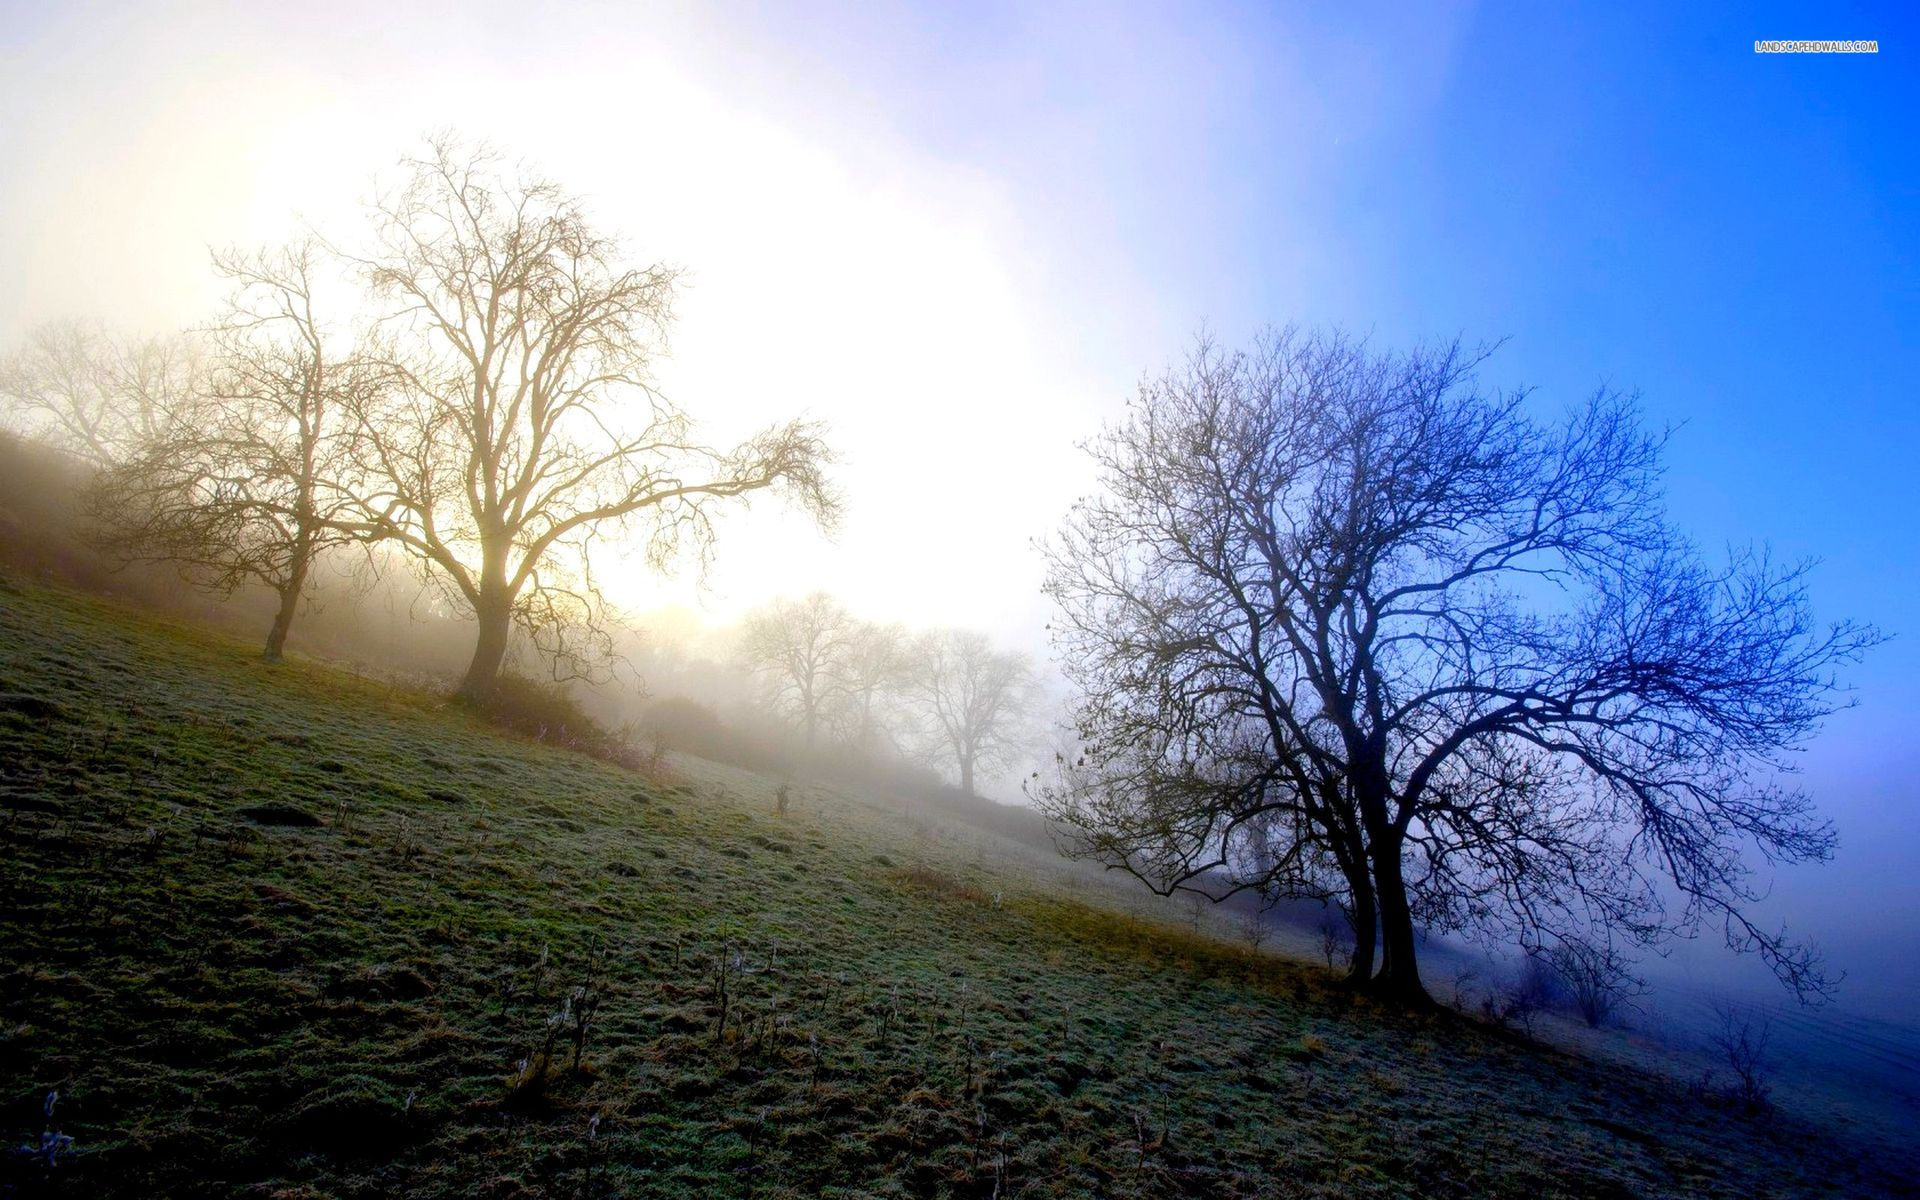 Animated Wallpaper For Tablet Misty Morning Hills Trees Wallpapers Misty Morning Hills